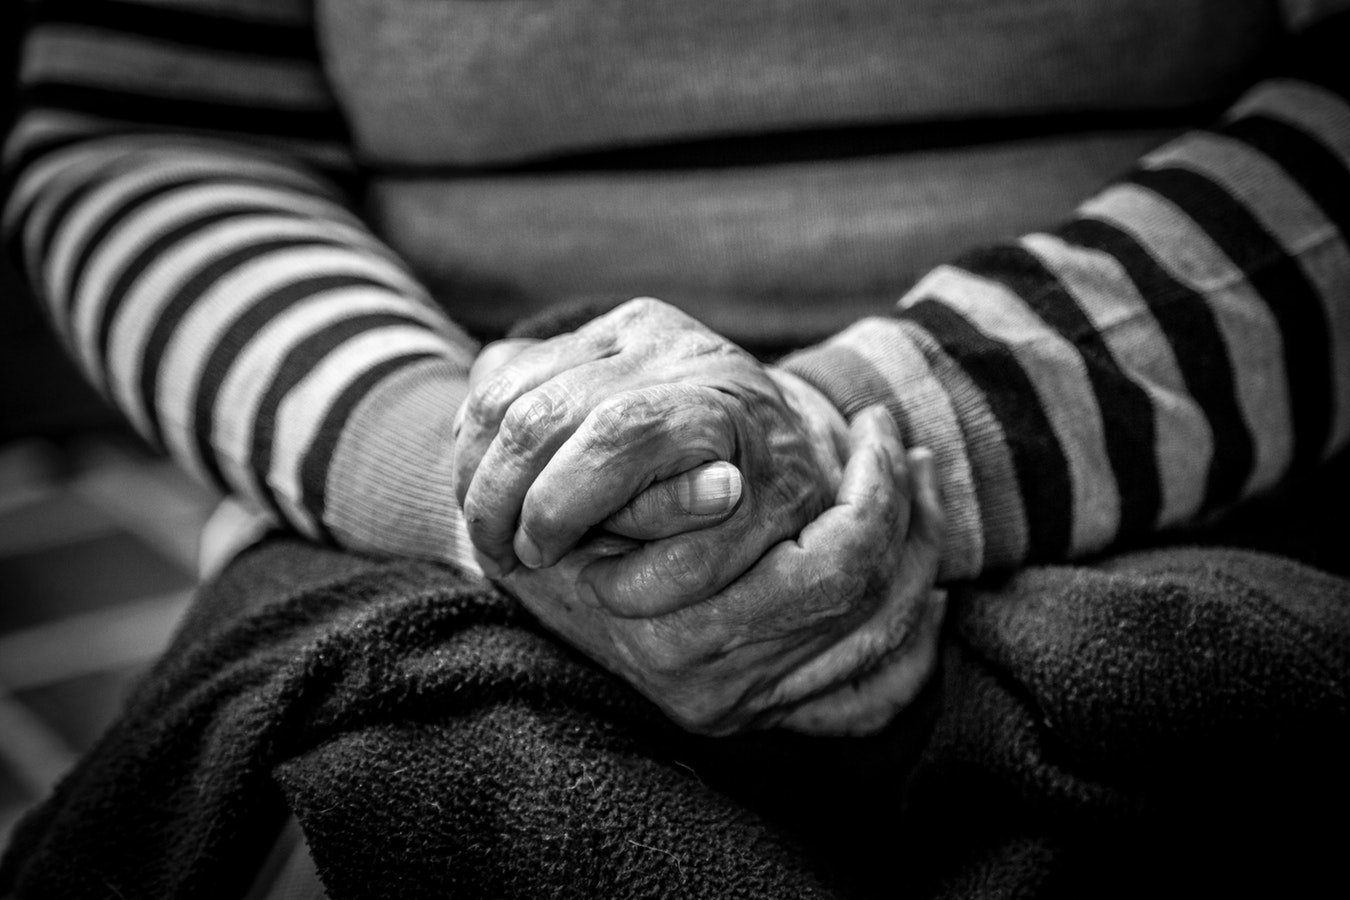 A older woman holder her hands in her lap